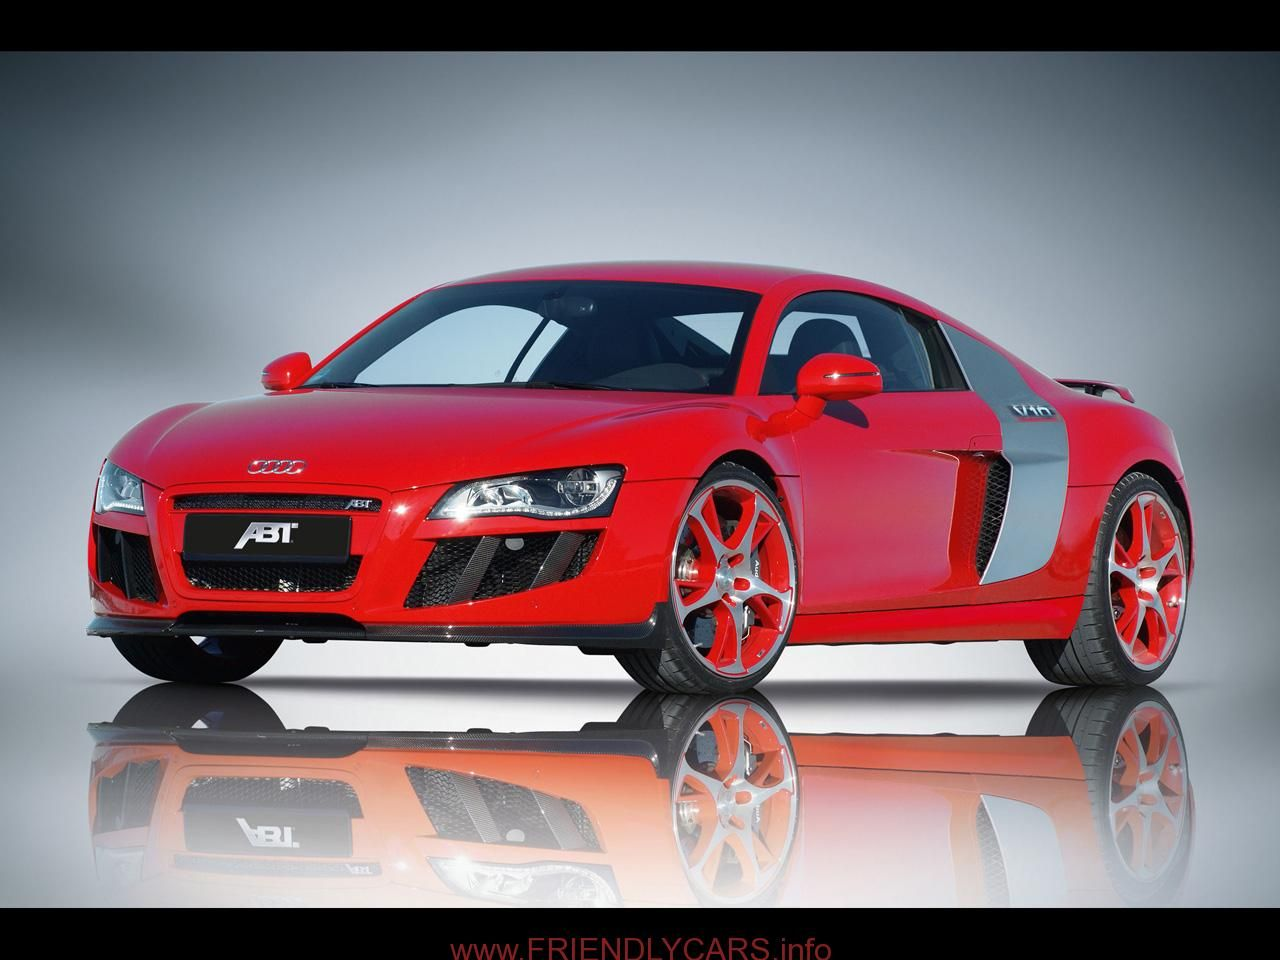 Cool Audi R8 Spyder Red Car Images Hd Hd Cool Car